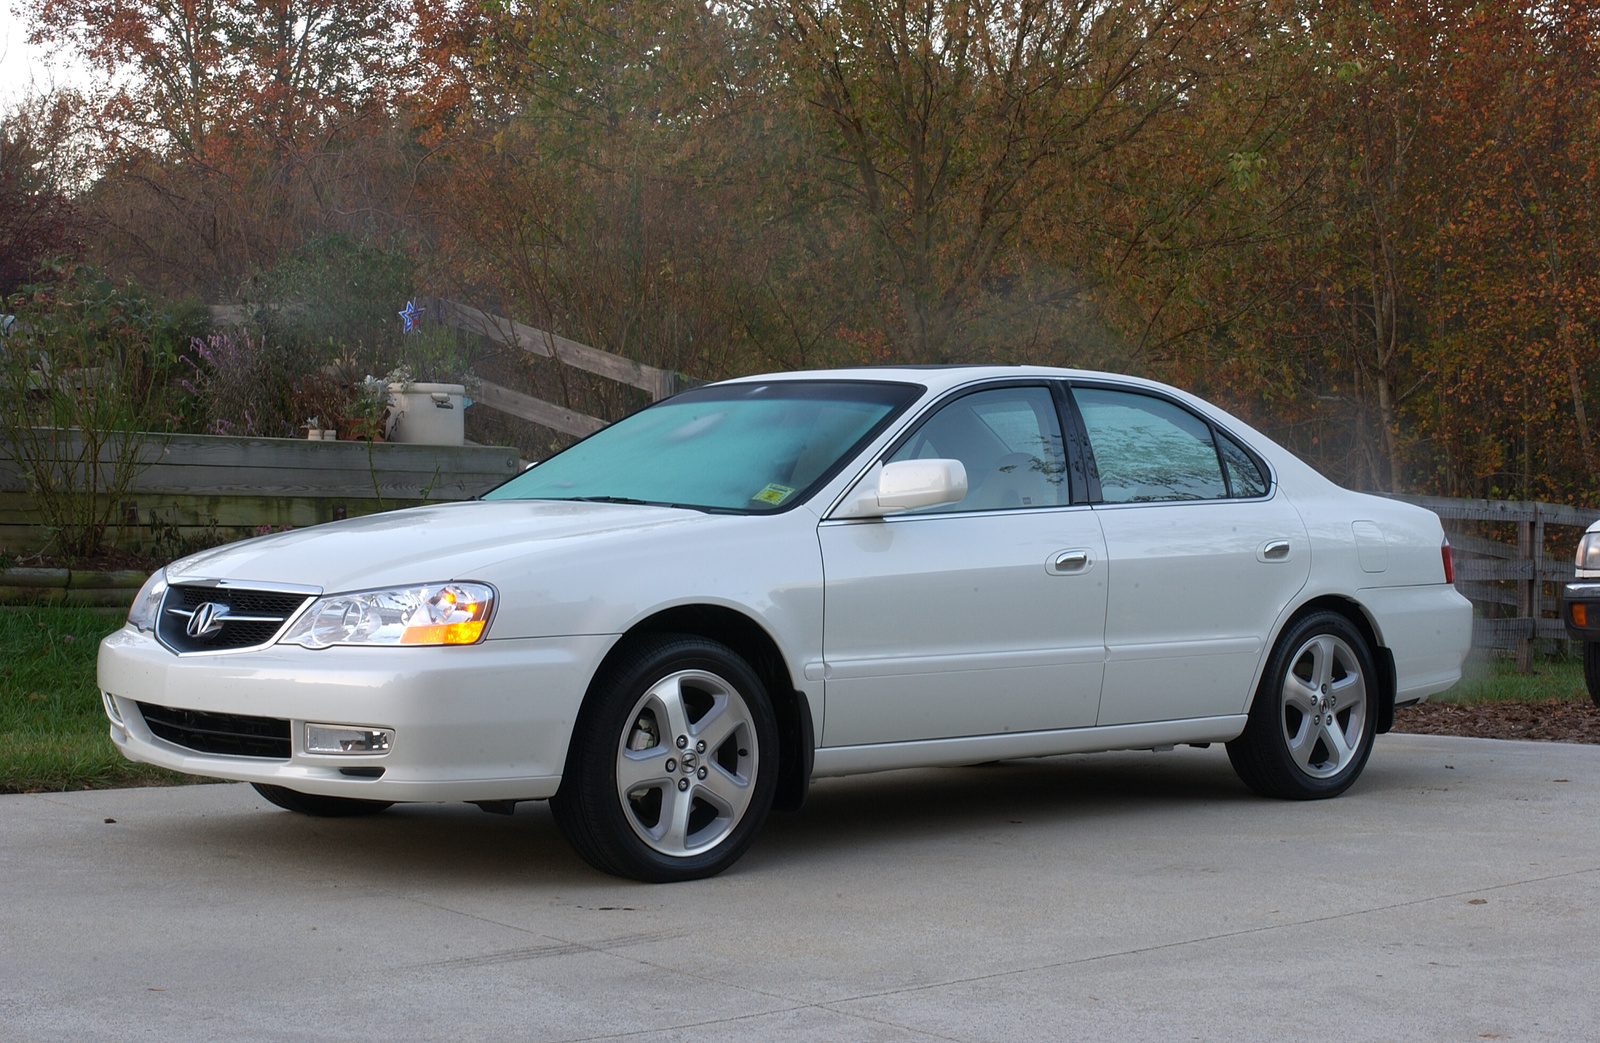 s tl acura type pany for of beautiful sale motor bleskin mt city